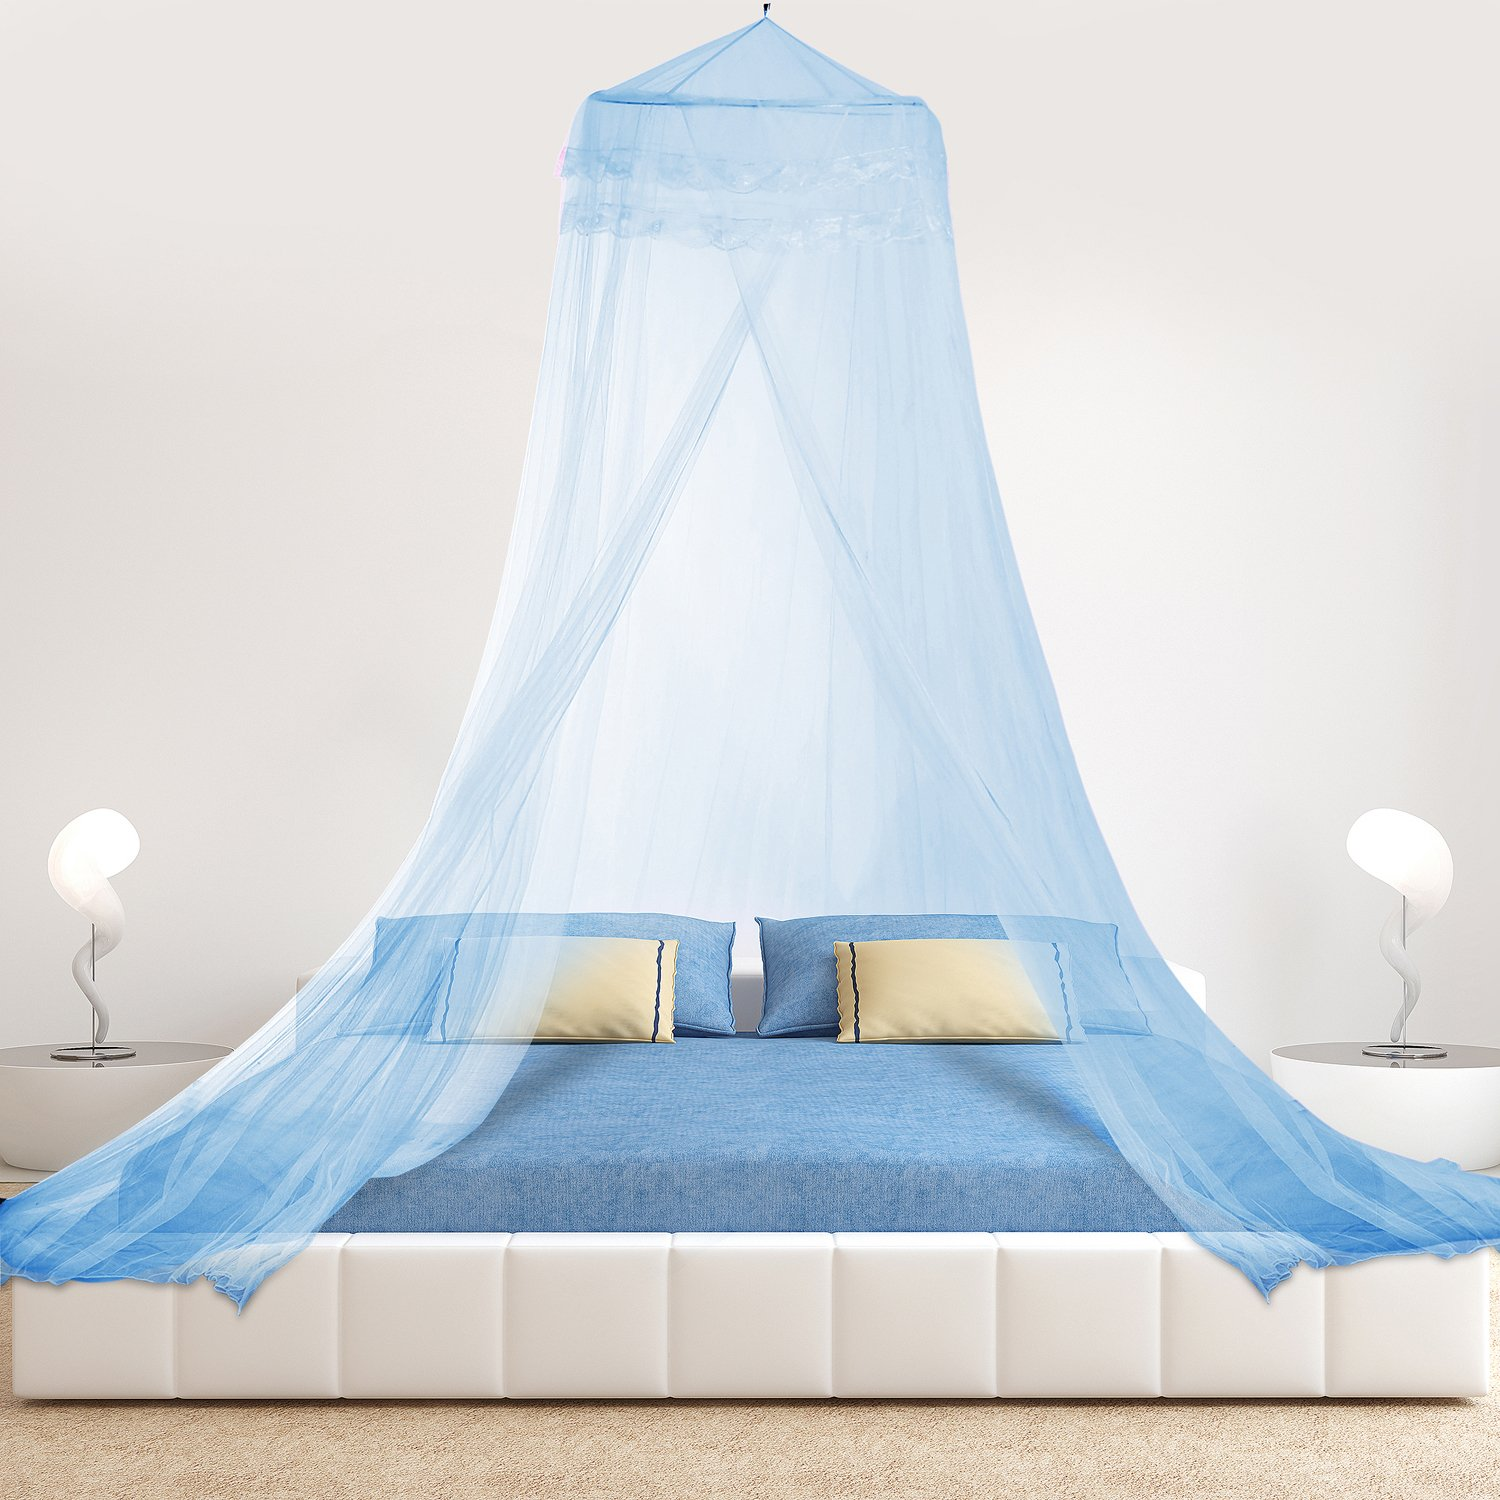 HIG Mosquito Net Bed Canopy Lace Dome, Full, Blue